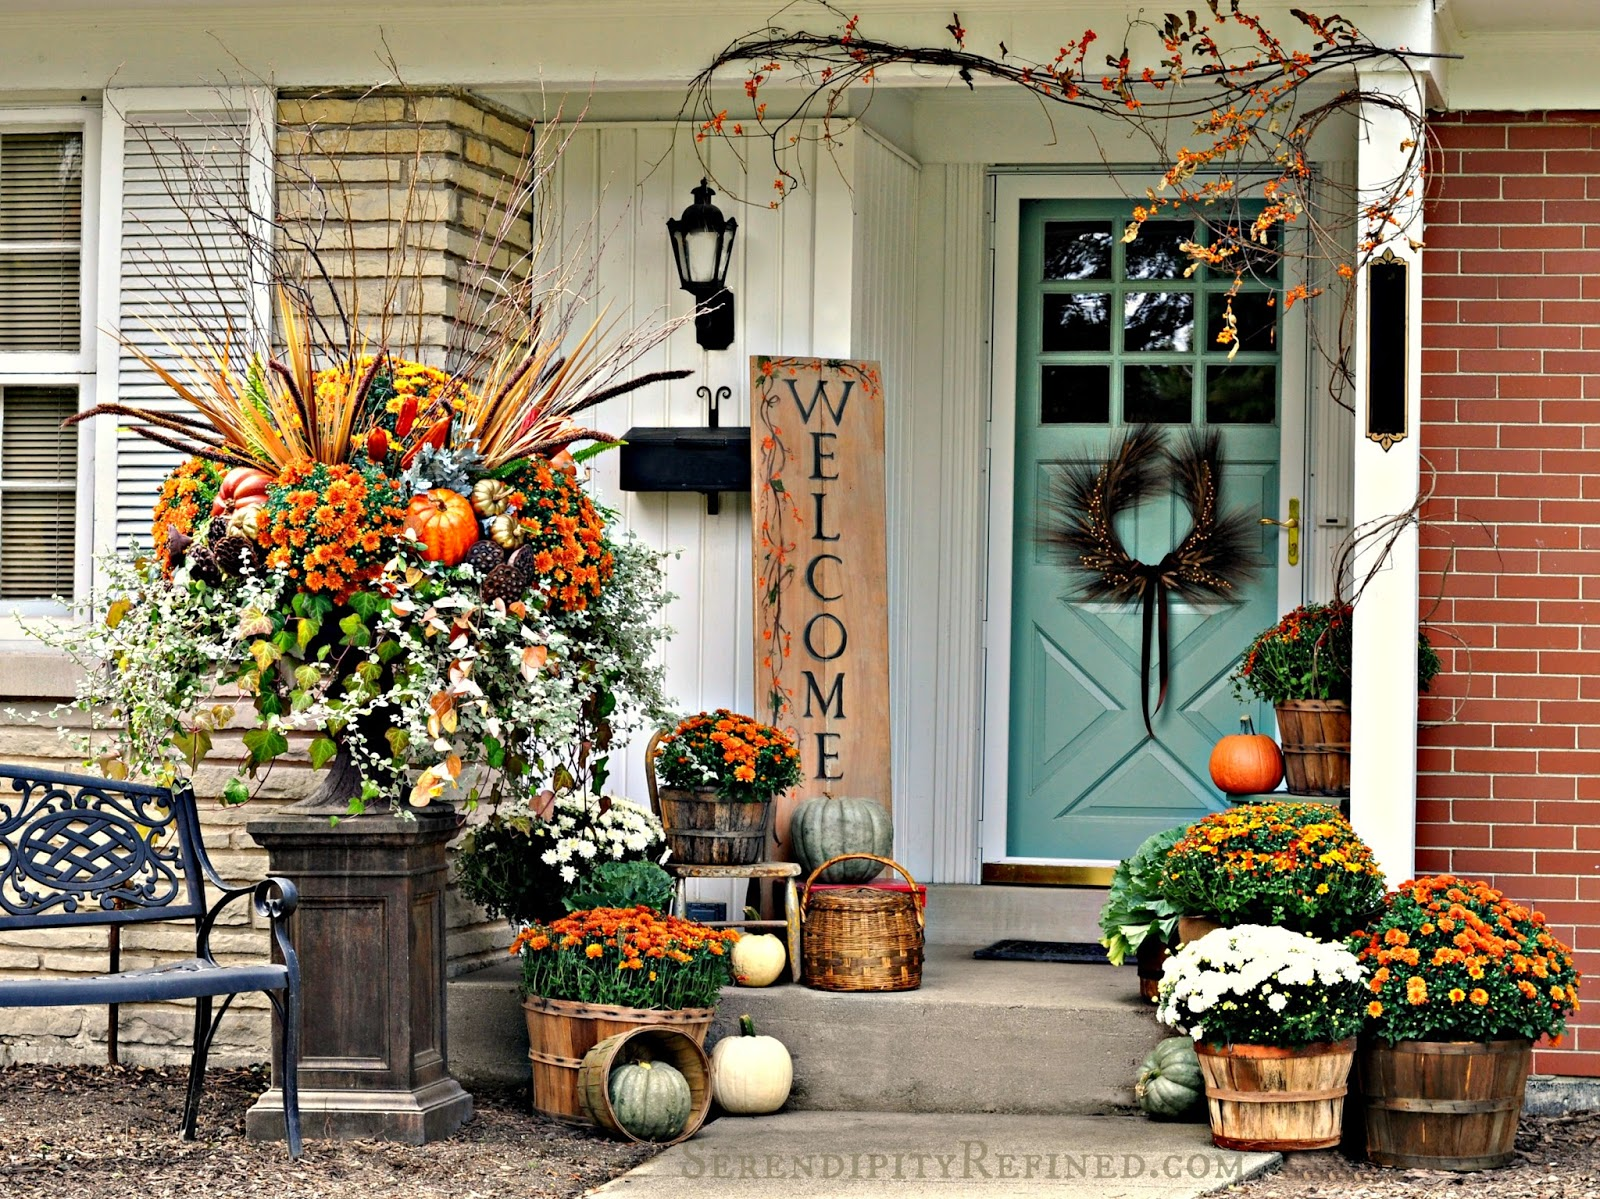 Fabulous Outdoor Decorating Tips and Ideas for Fall - ZING ... on Lawn Decorating Ideas id=80520